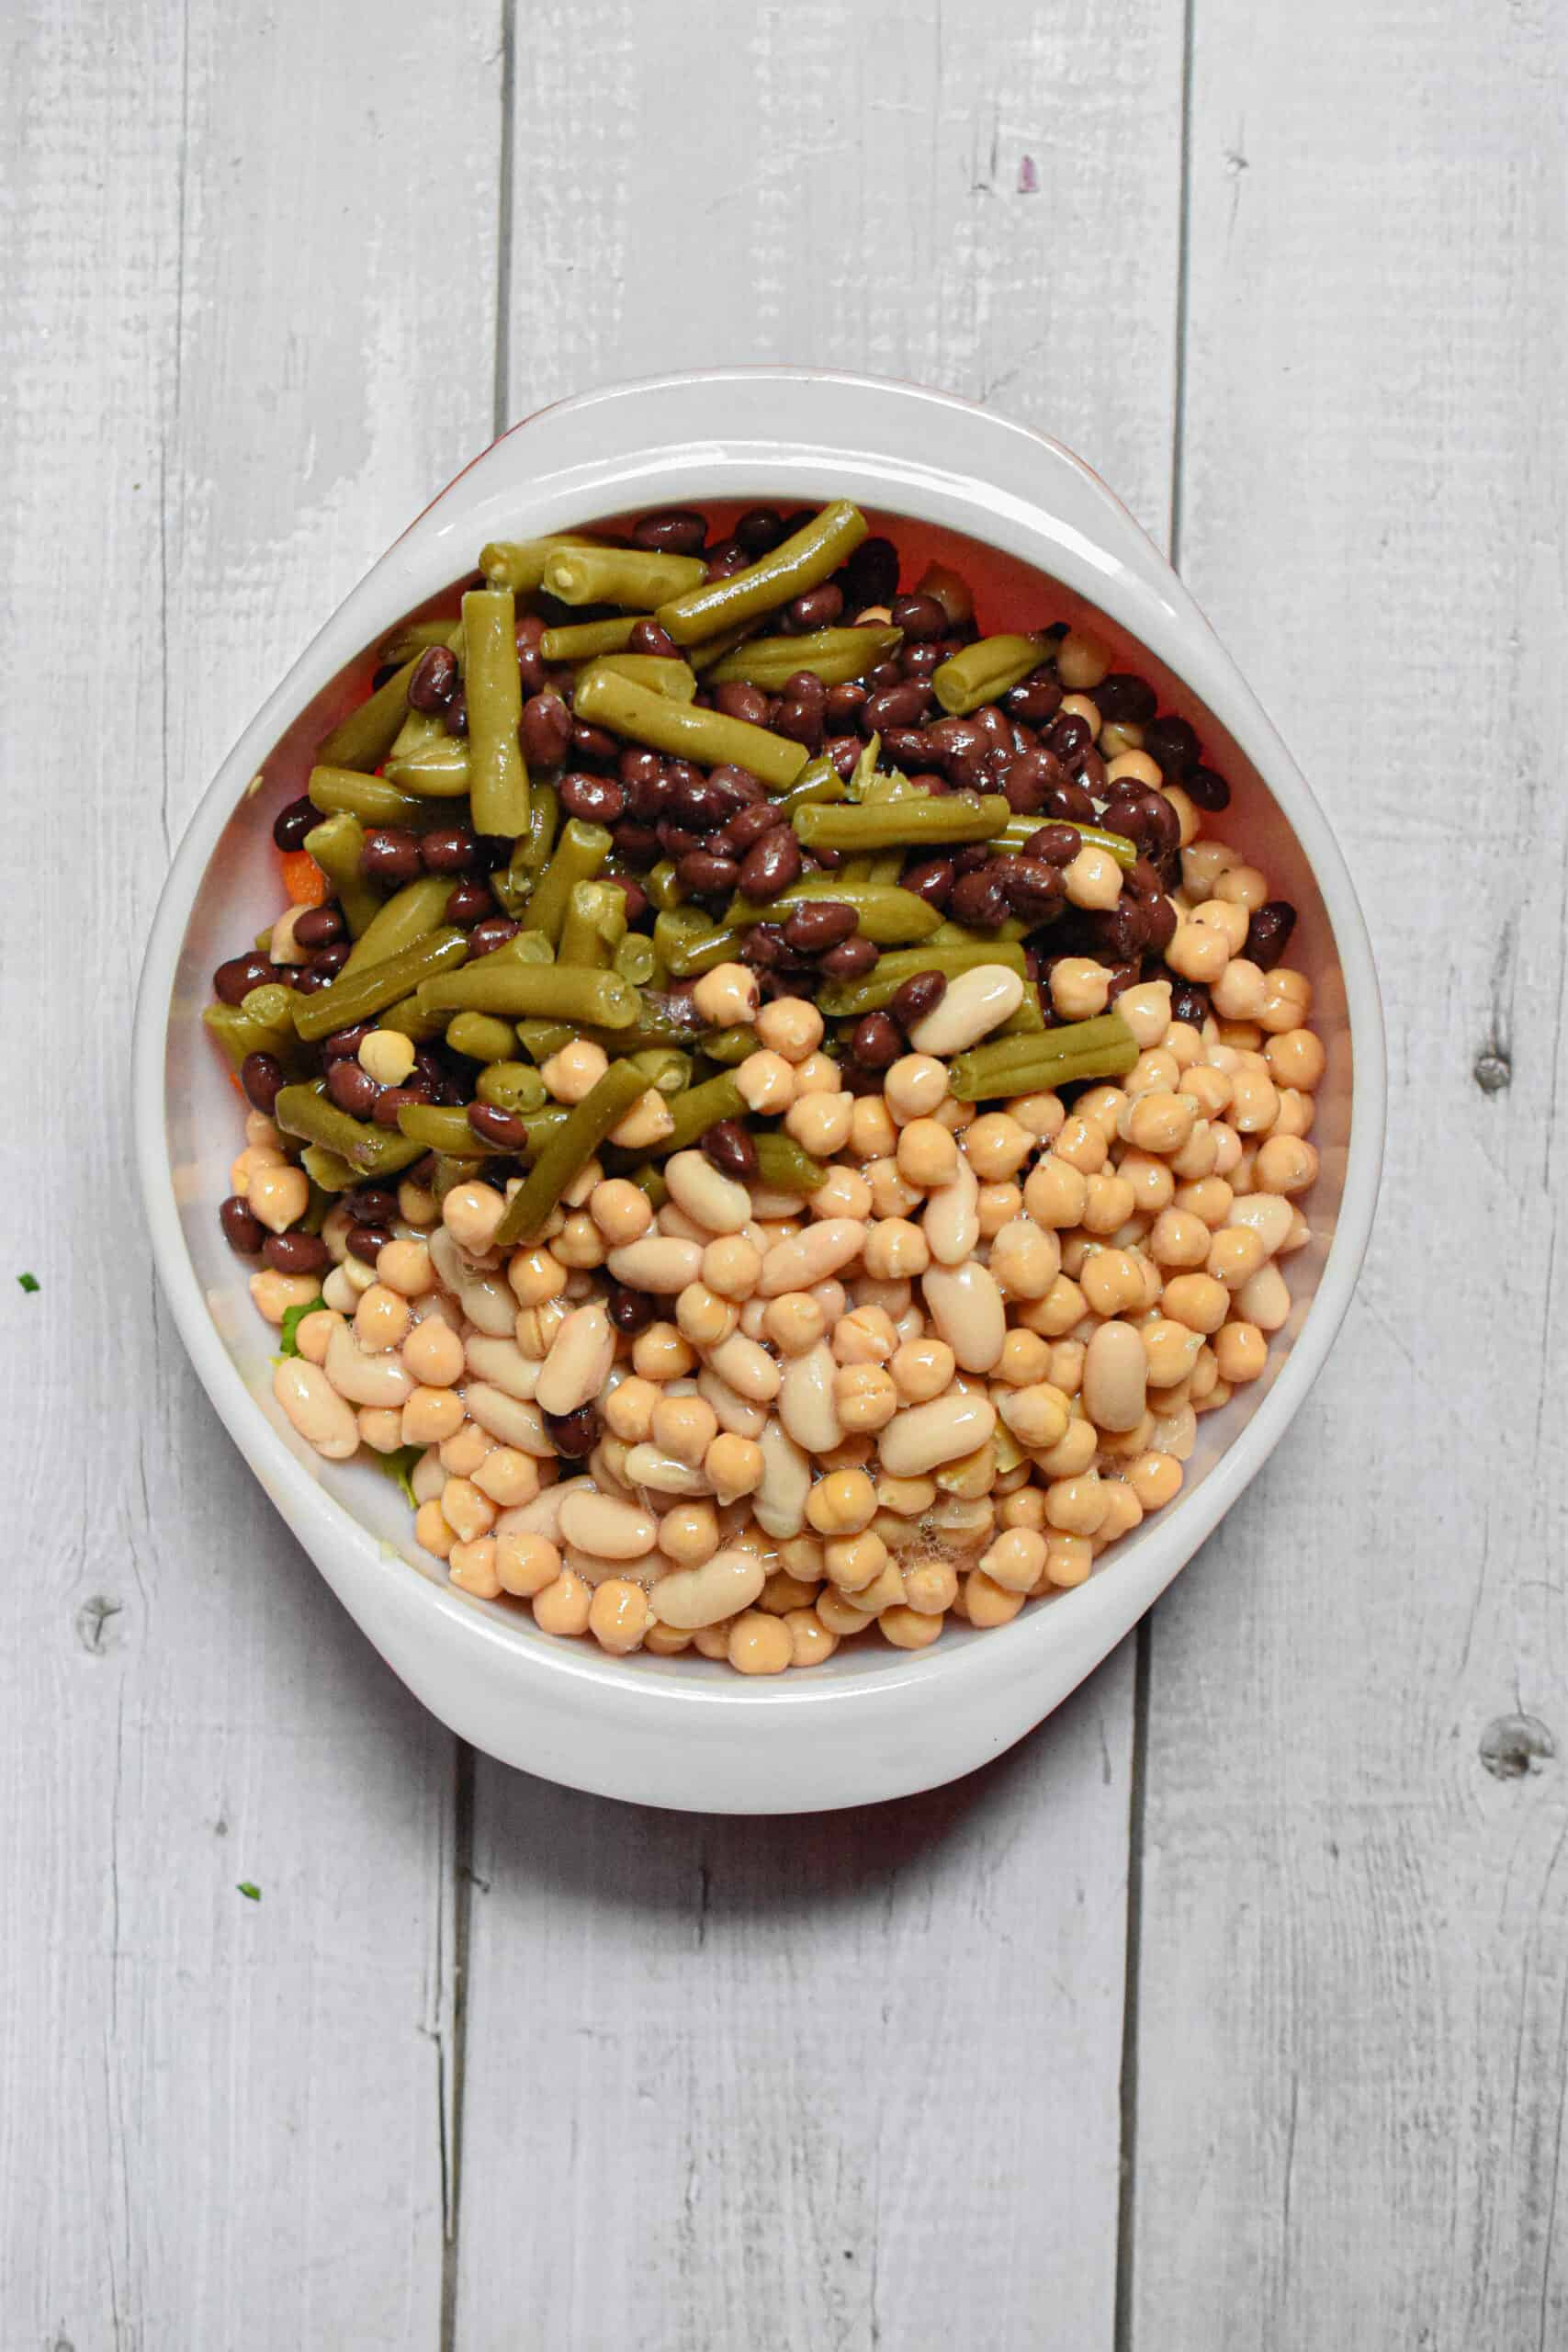 The beans are added to the 10 minute four bean salad